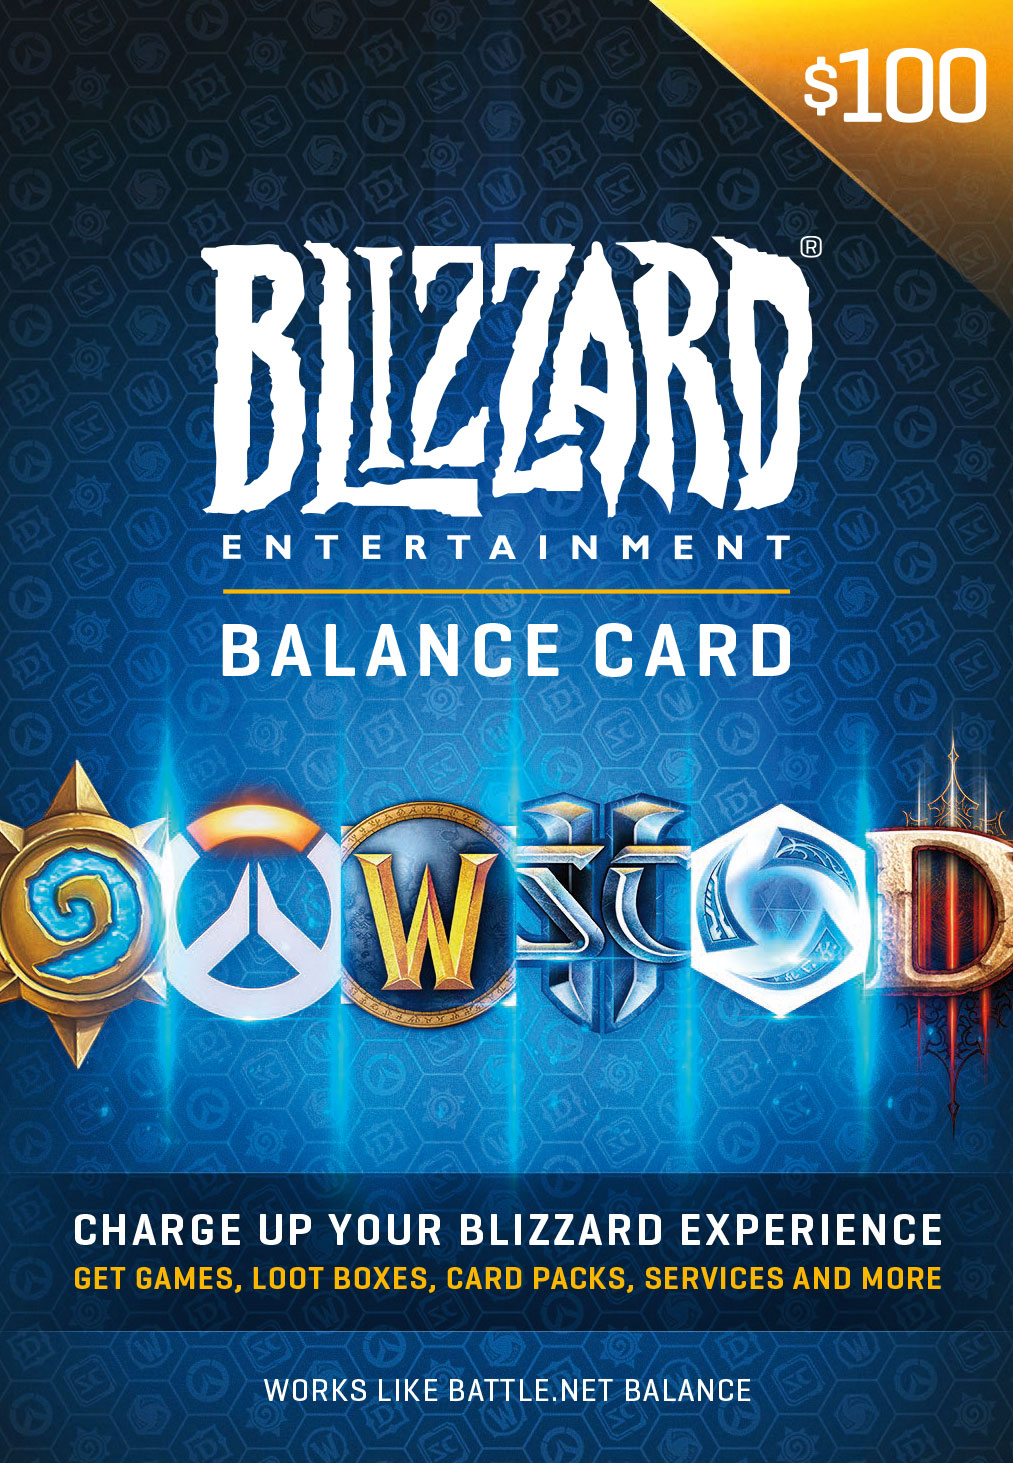 $100 Battle.net Store Gift Card Balance [Online Game Code] by Blizzard Entertainment (Image #2)